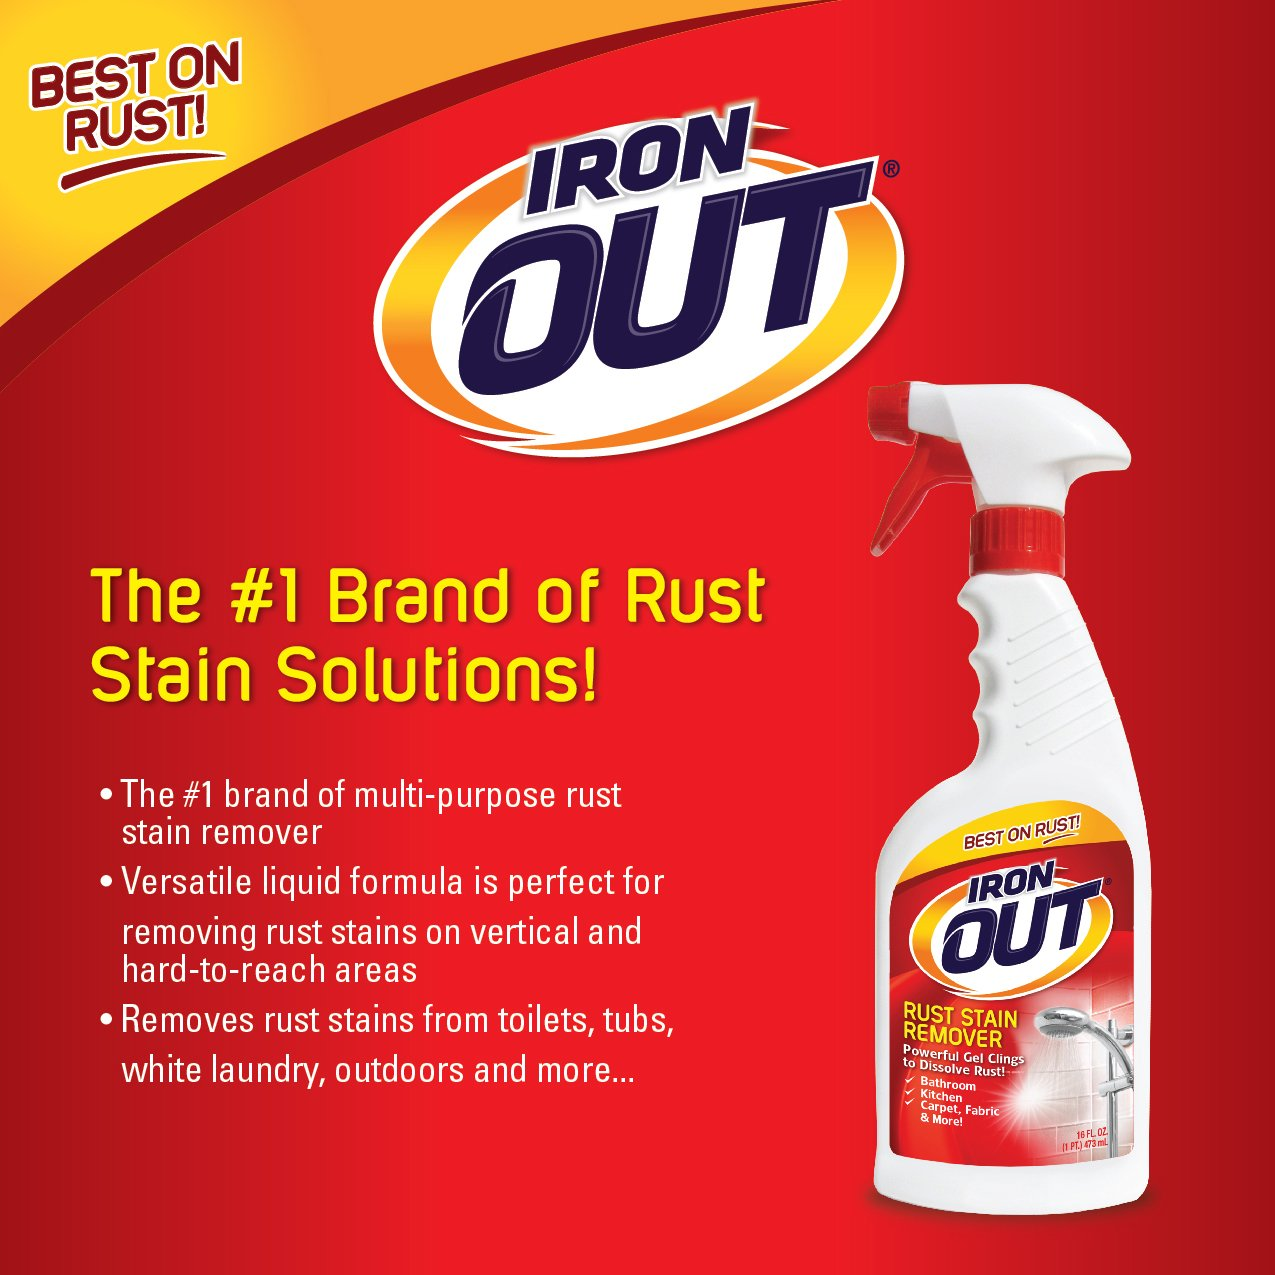 Iron OUT Rust Stain Remover Spray Gel, 16 Fl. Oz. Bottle, 6 Pack by Summit Brands (Image #6)